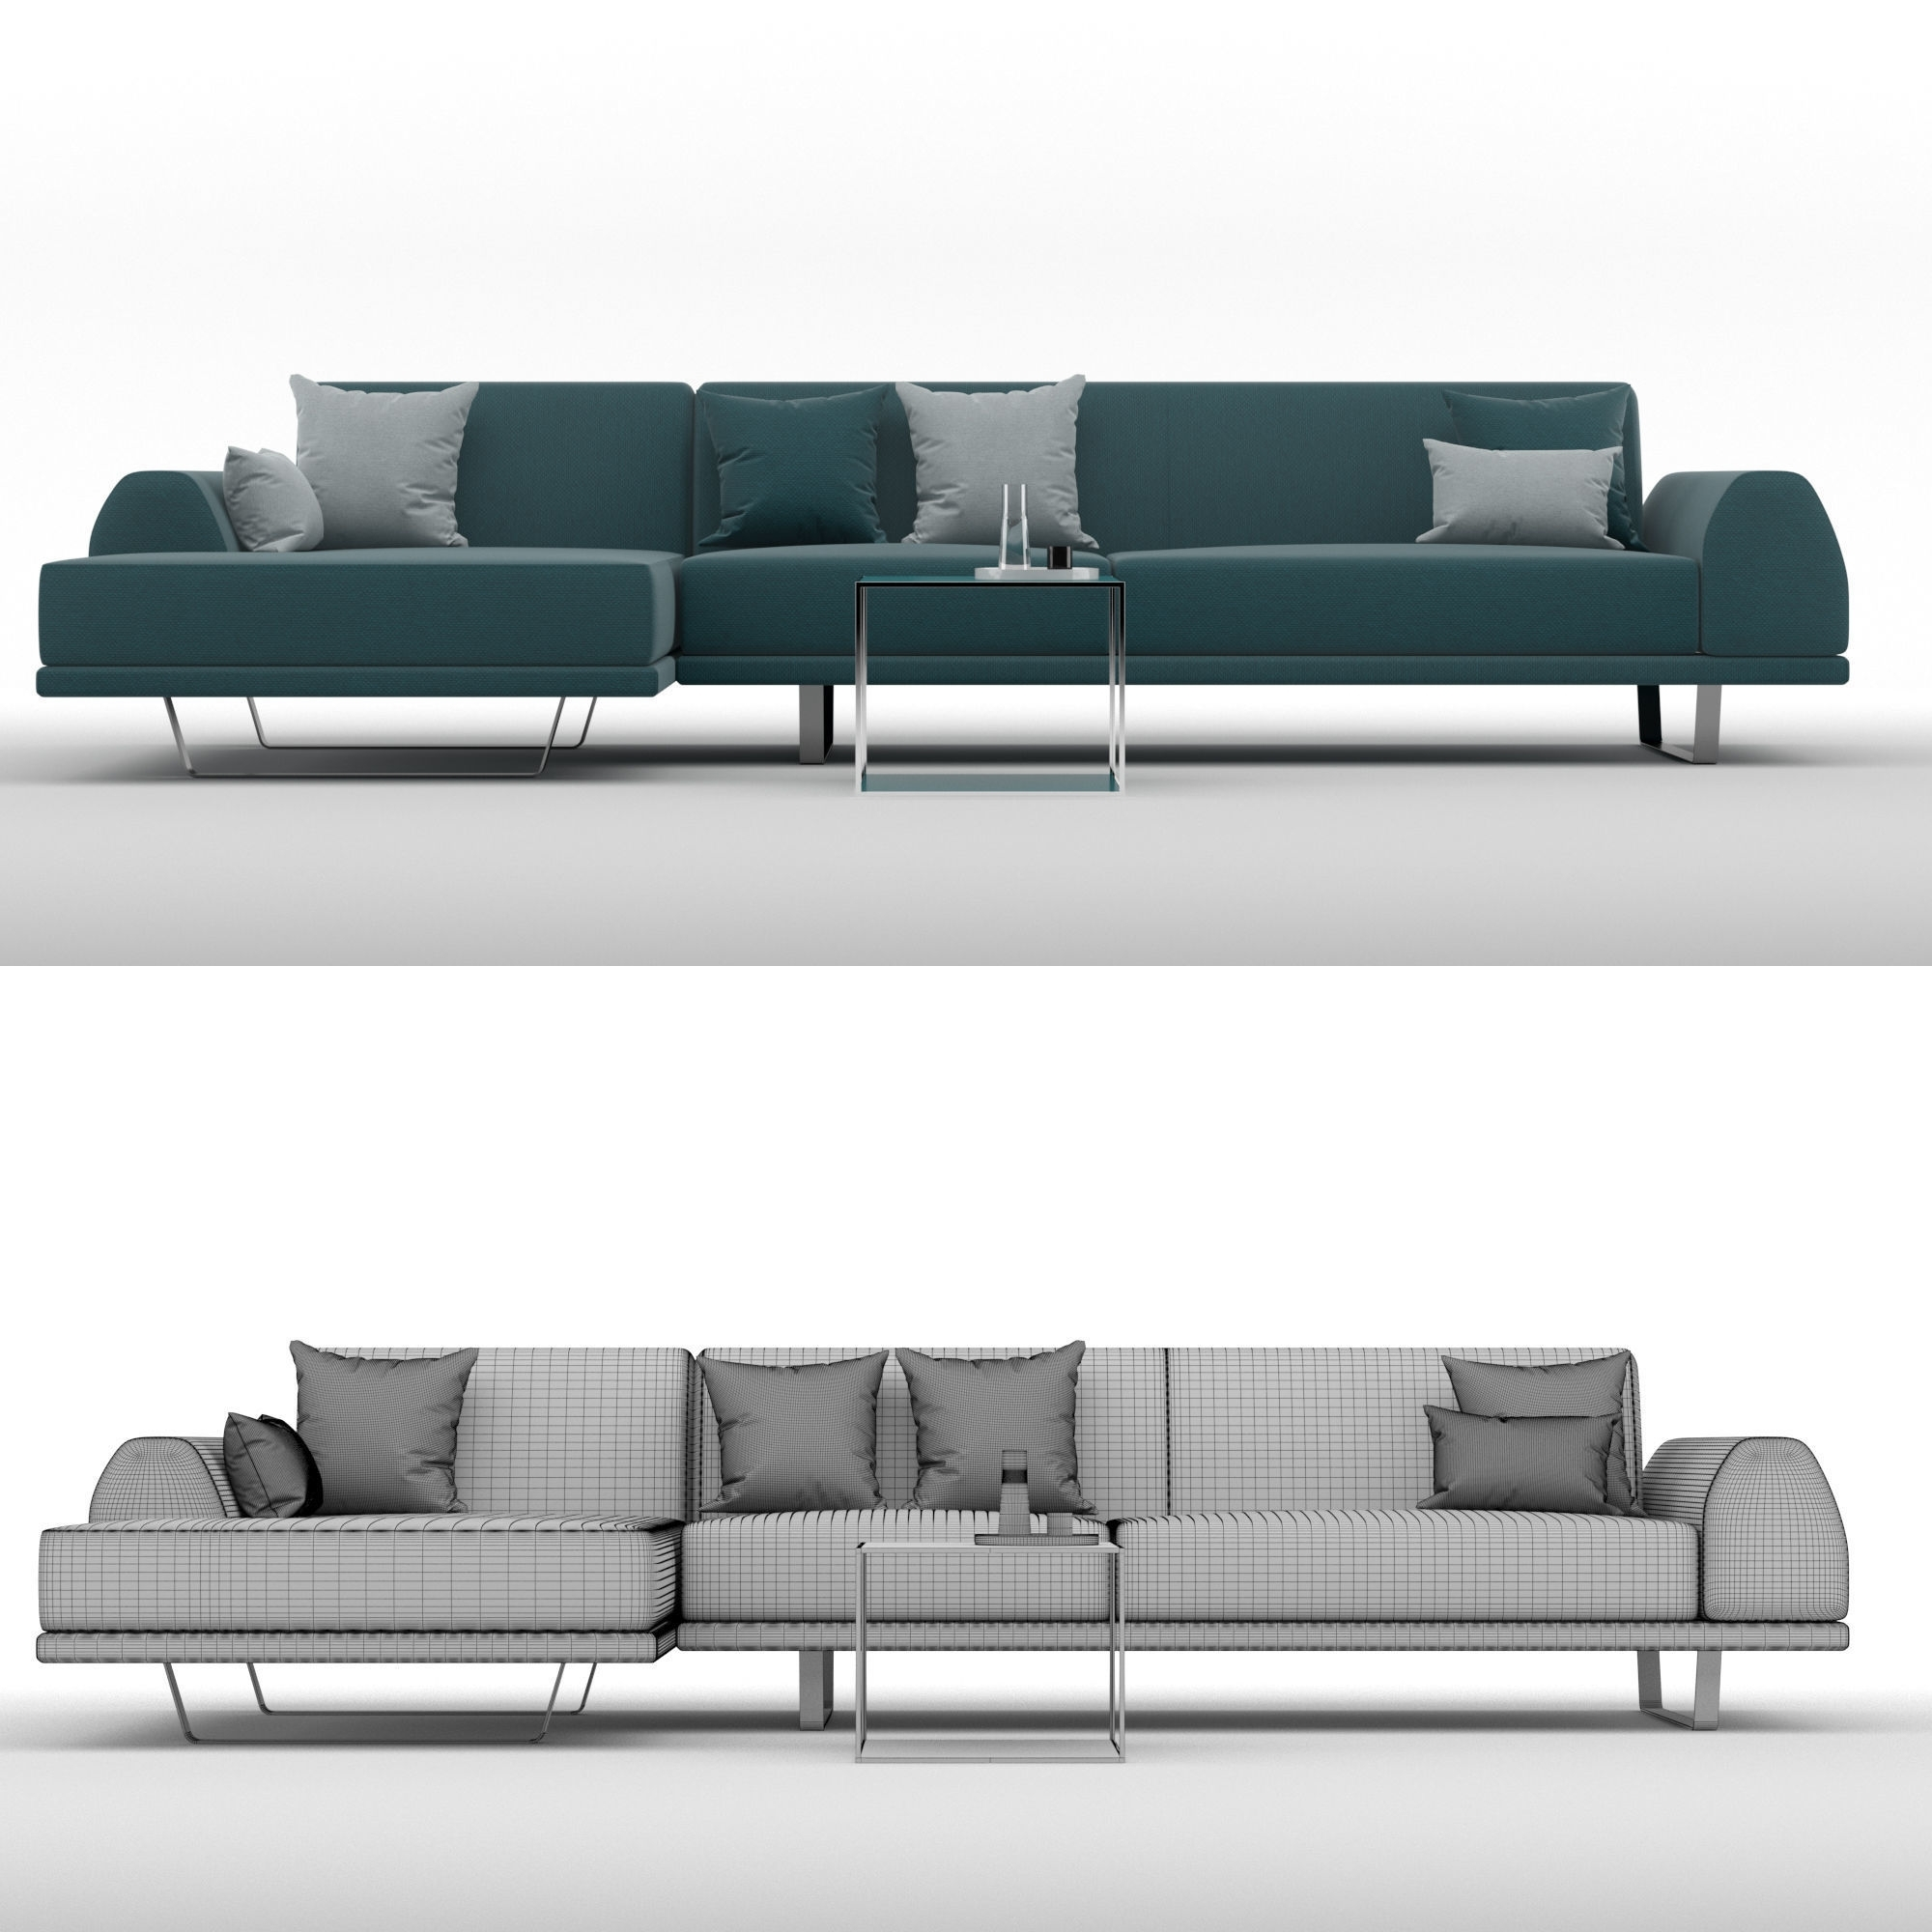 Cgtrader With Regard To 2019 Portland Sectional Sofas (View 20 of 20)